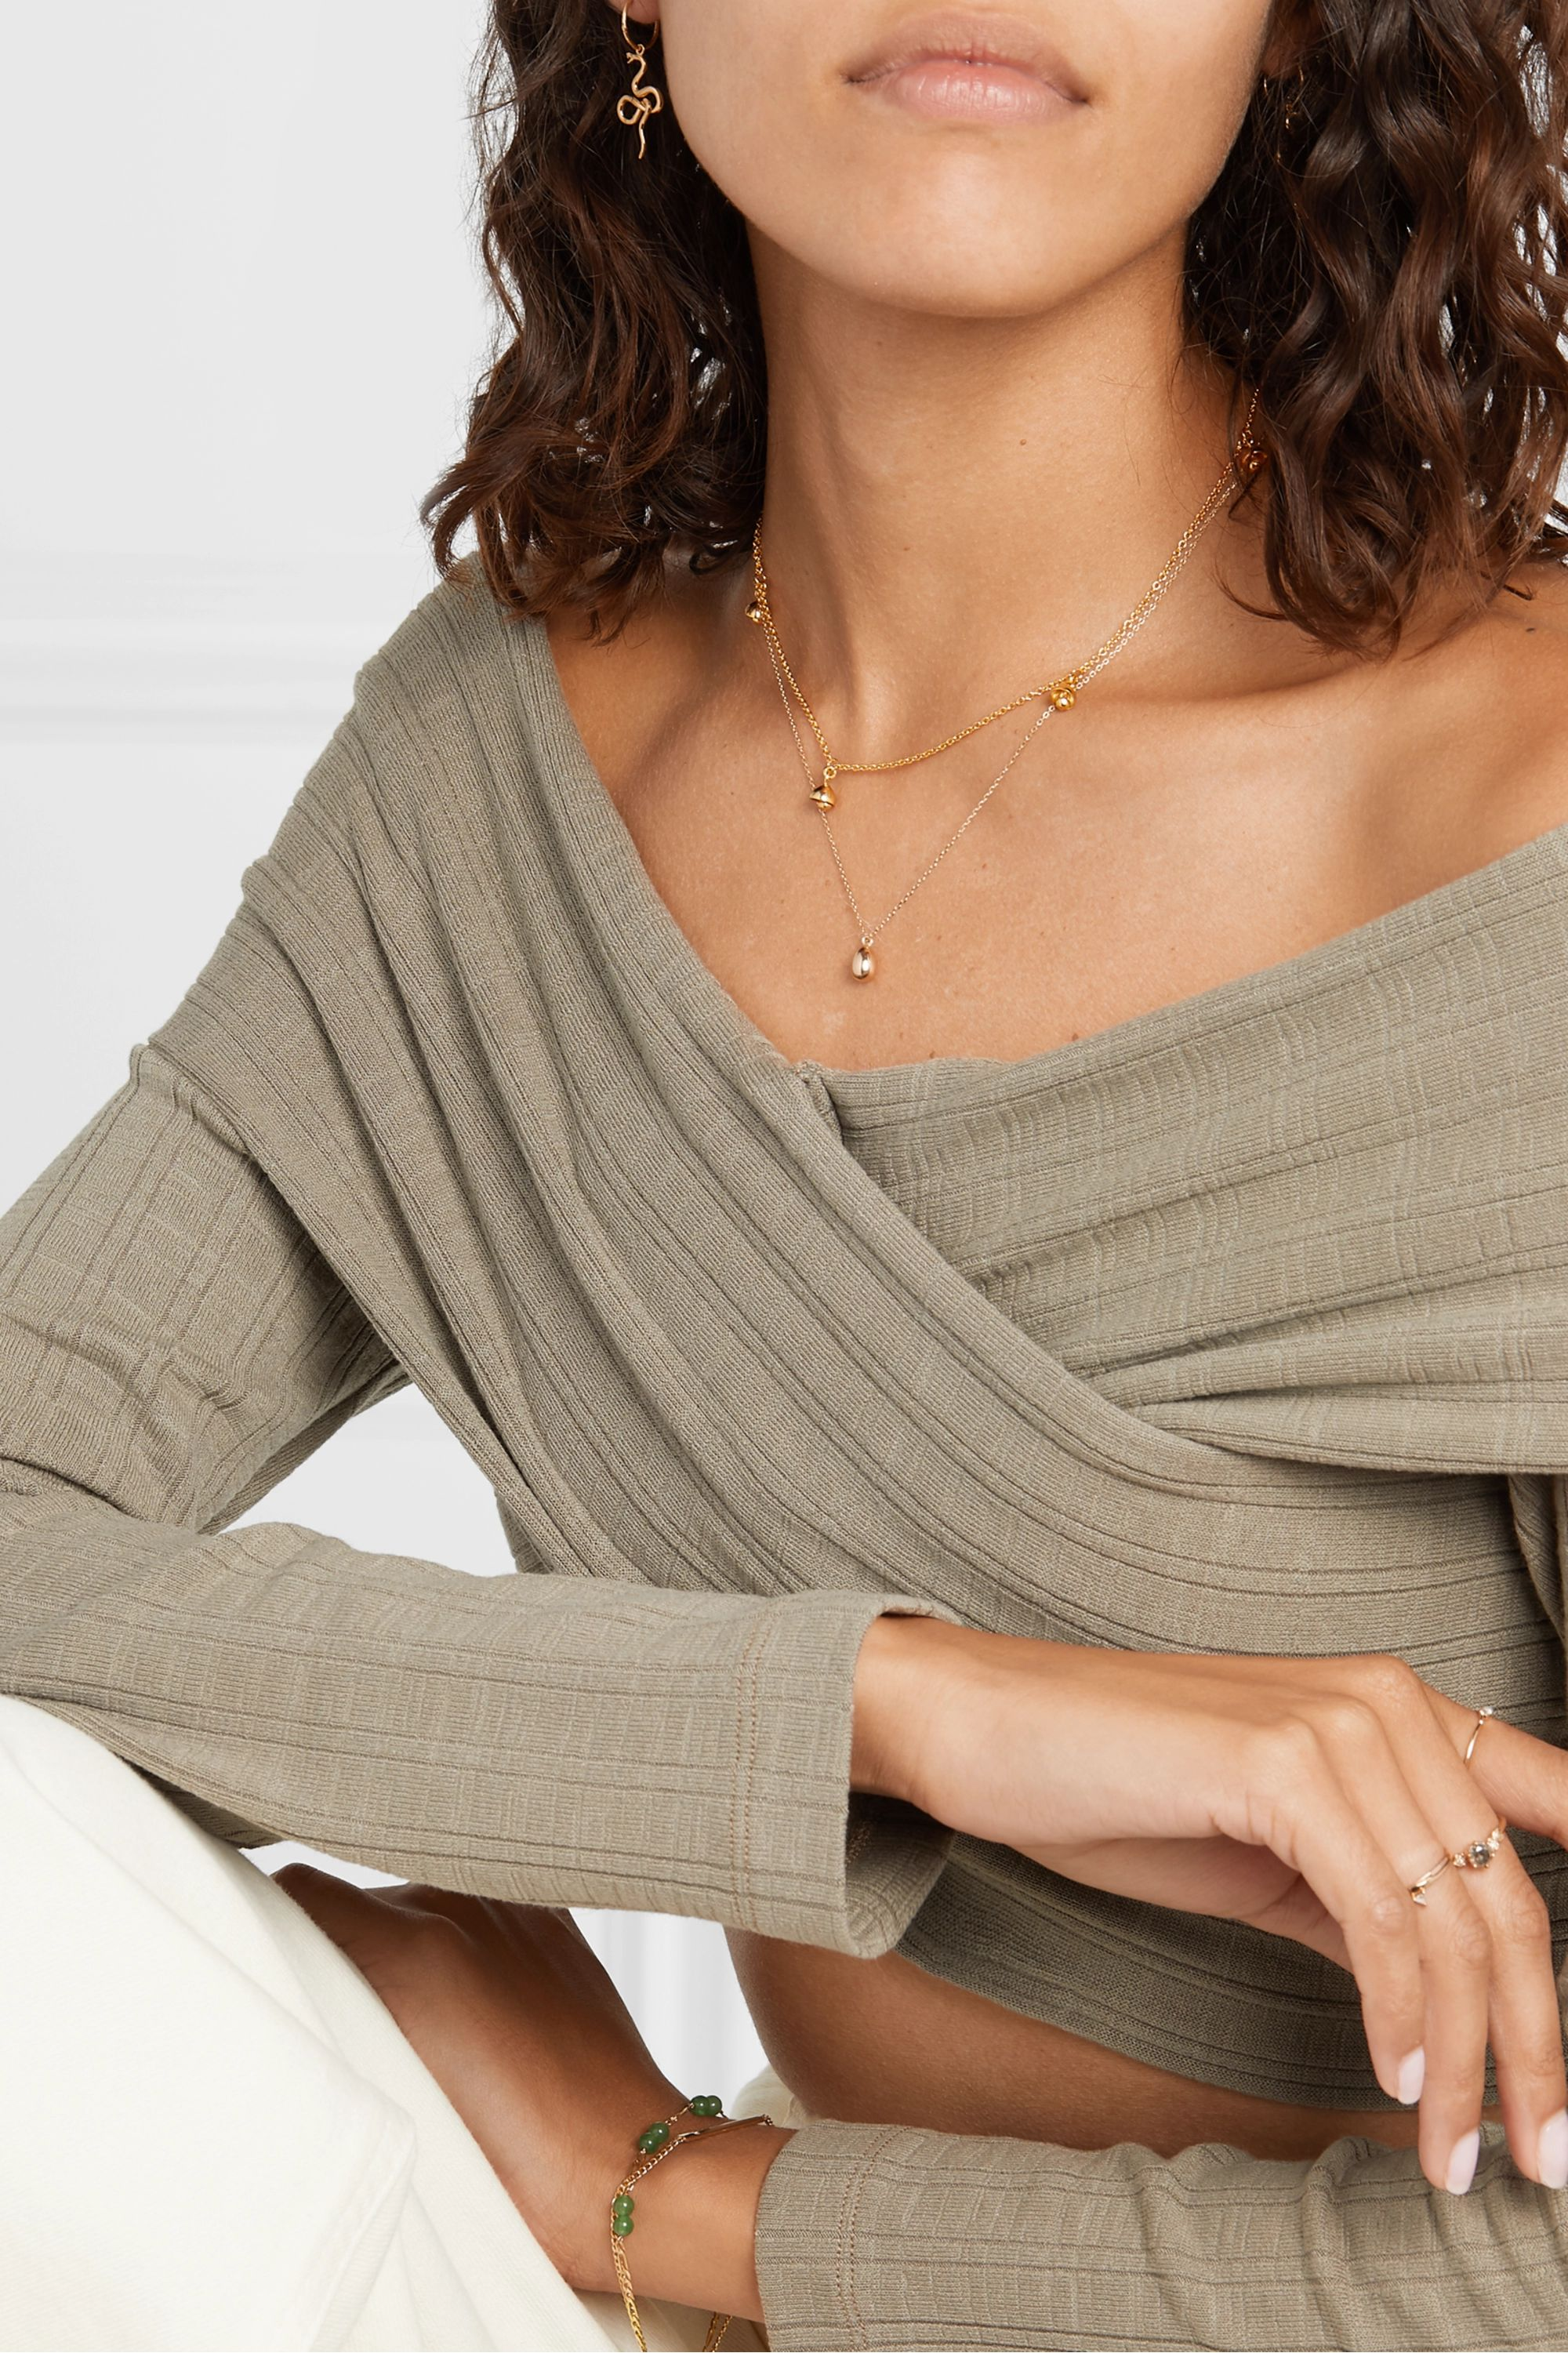 Meadowlark Bell gold-plated necklace